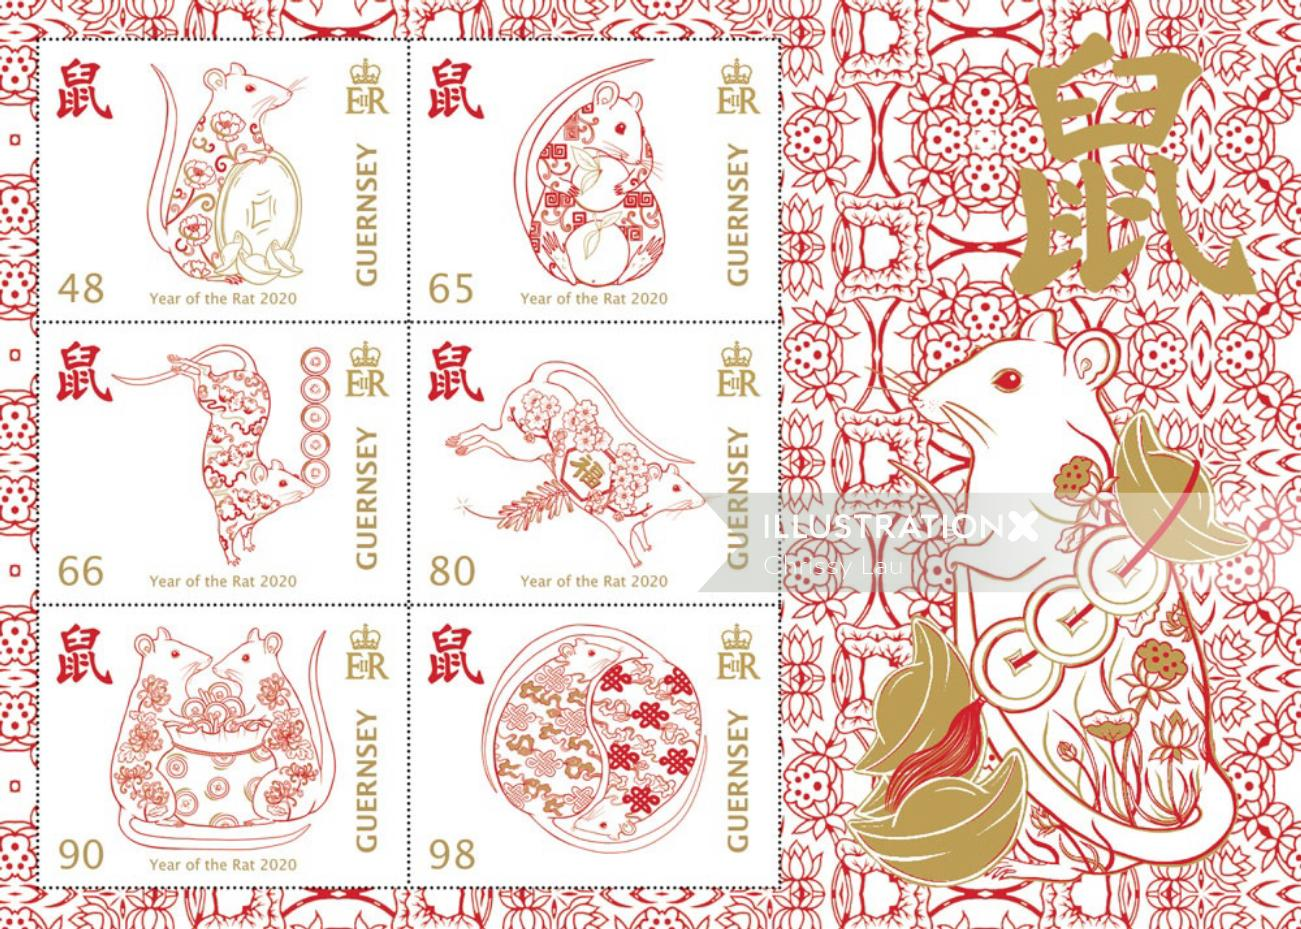 Chinese Lunar New Year stamp illustration